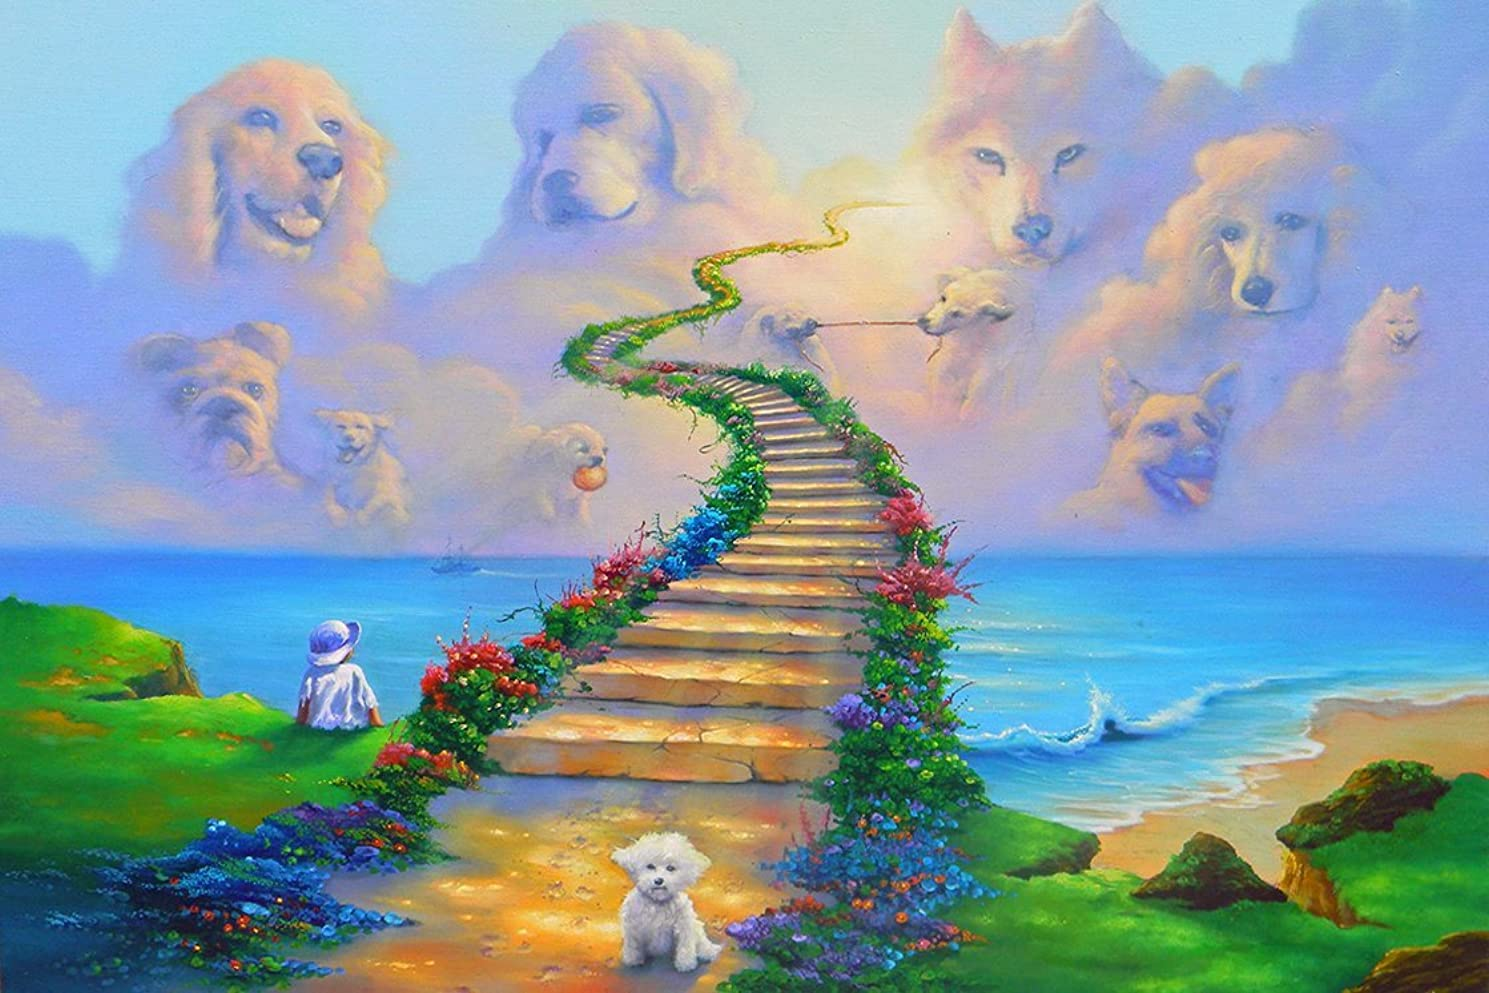 Diamond Painting Kits for Adults by Paint With Diamonds XL 60x40cm 'All Dogs Go to Heaven' Full Canvas Square Diamonds (Plus Free Premium Diamond Pen)